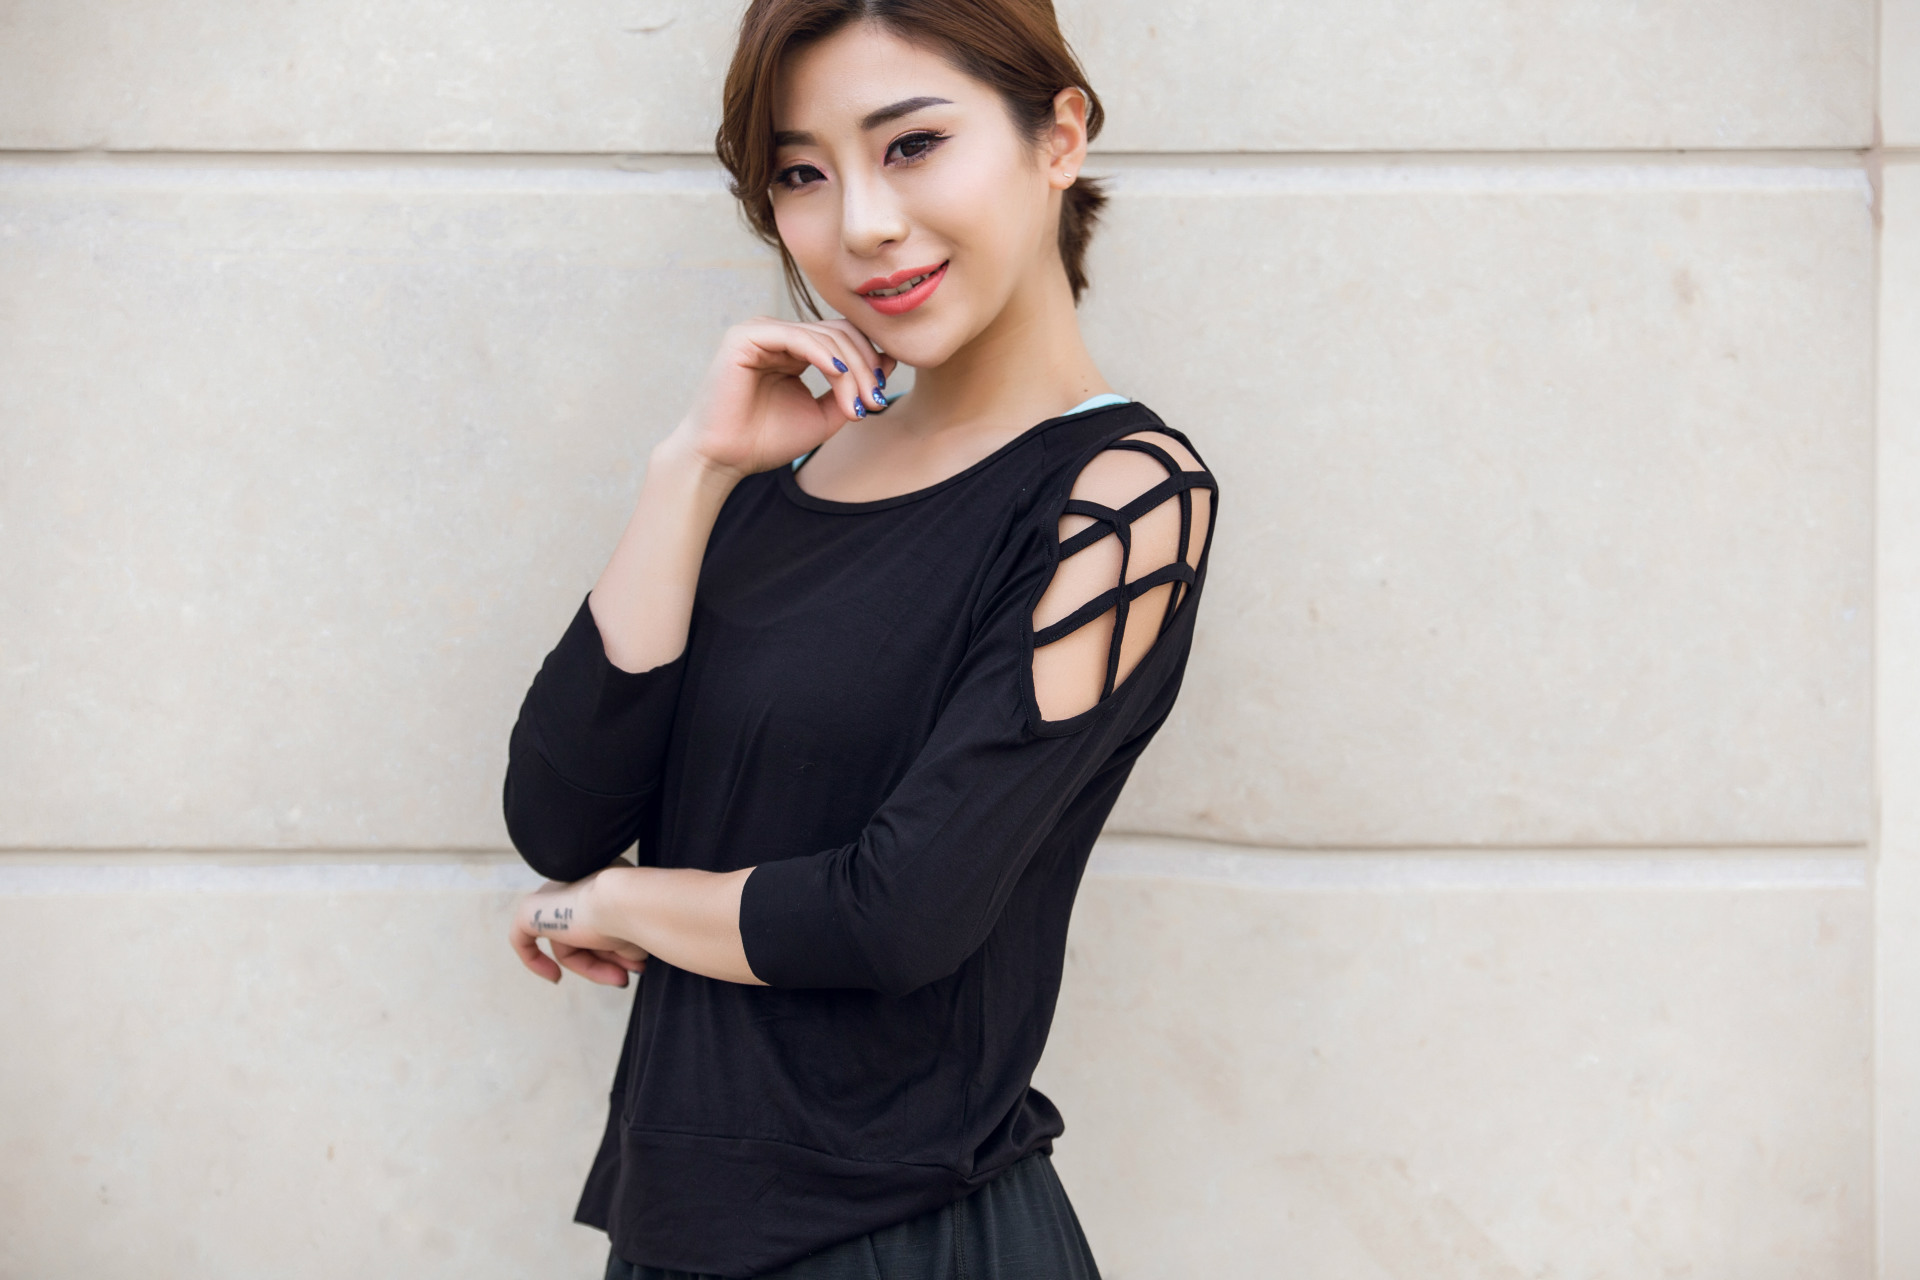 summer women fashion sexy hollow out t-shirt female open shoulder t shirt solid black fitness clothing workout tee clothes N908